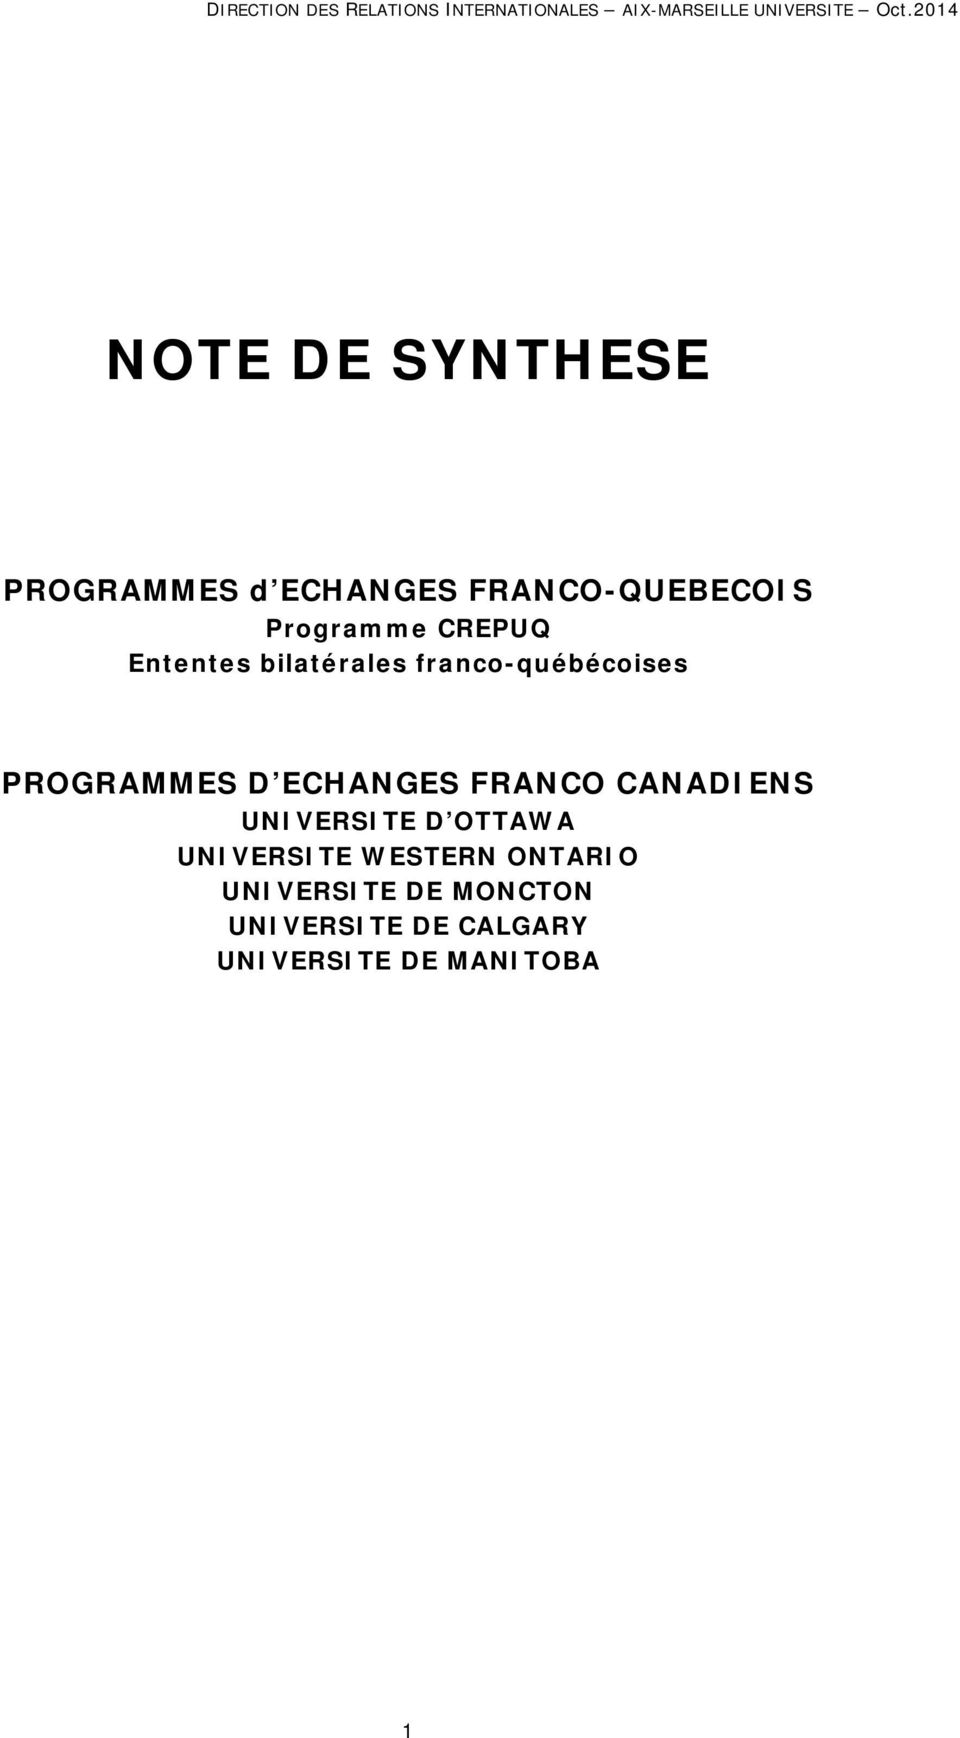 ECHANGES FRANCO CANADIENS UNIVERSITE D OTTAWA UNIVERSITE WESTERN